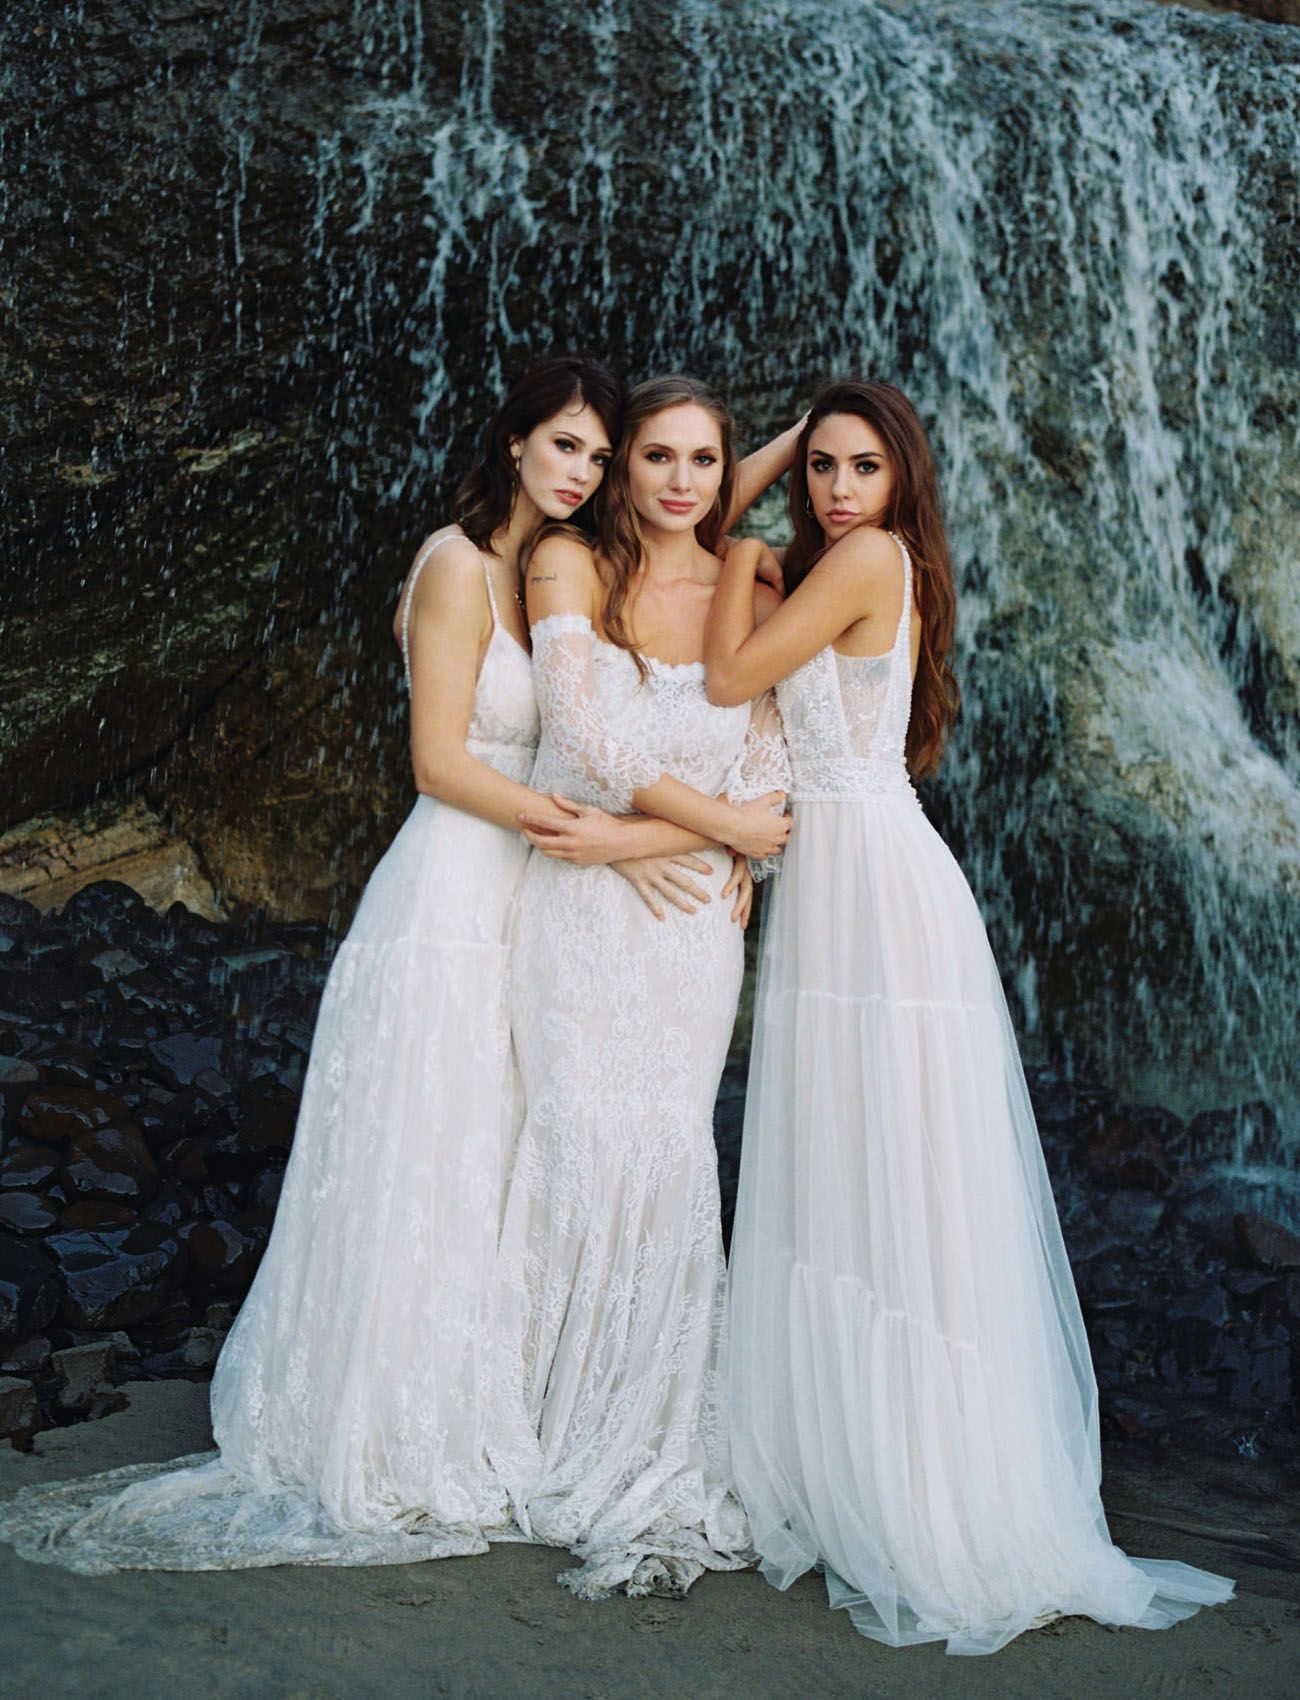 Wilderly bride free spirited boho wedding dresses by allure bridals